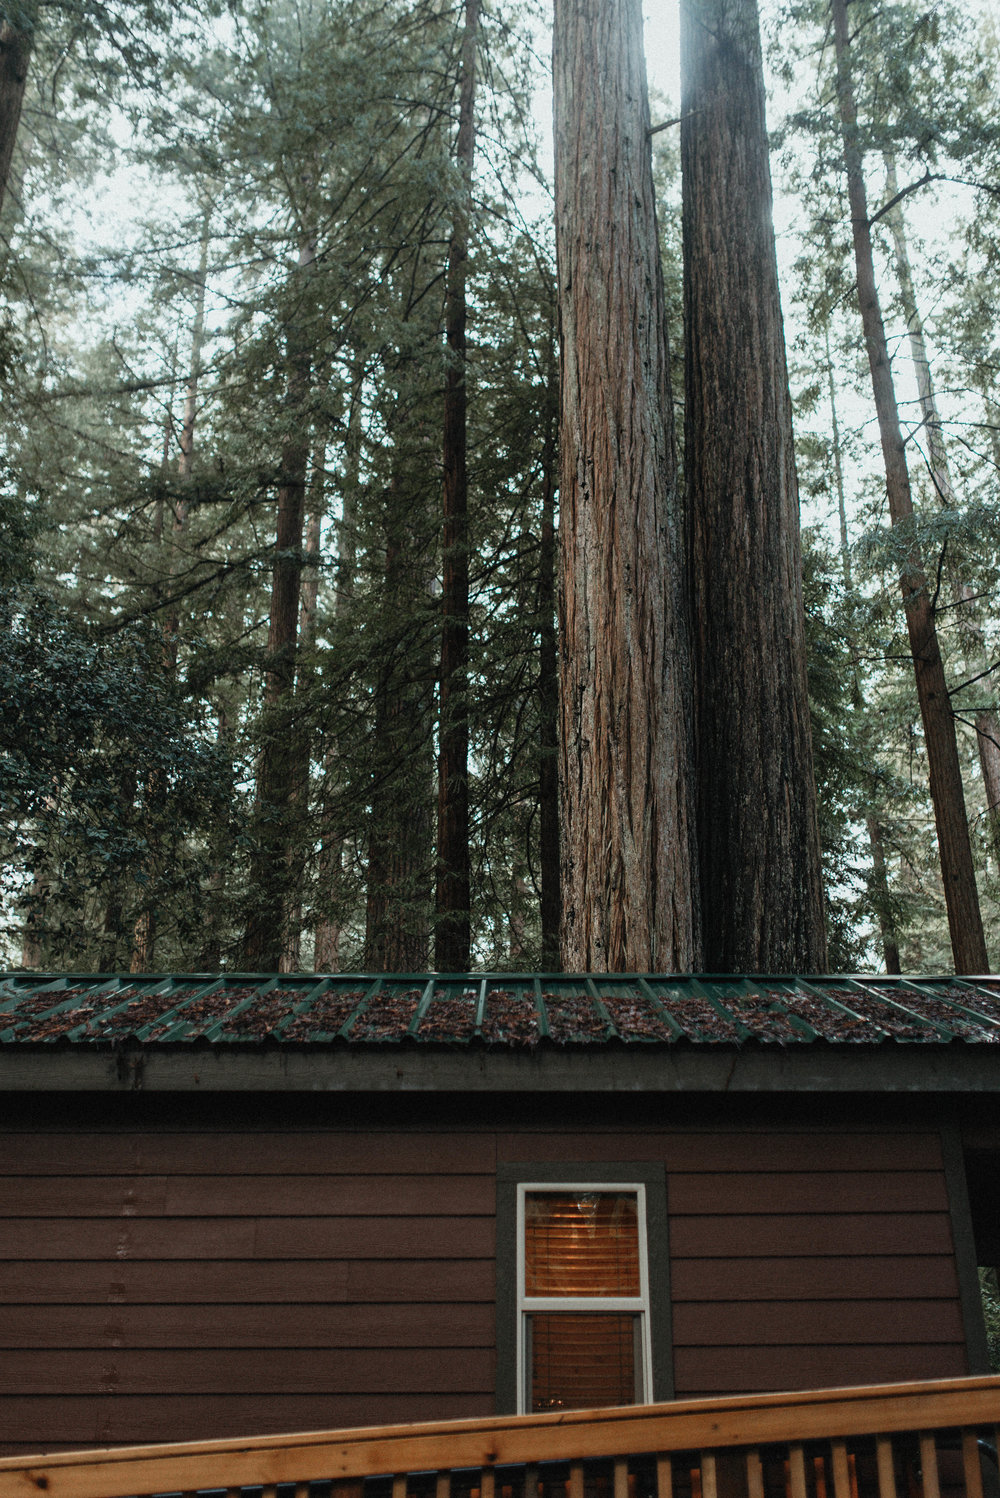 Intimiate Redwoods Elopement , Elopement Inspiration, Jessica Heron Images, Northern California Elopement, Oregon Elopement, Oregon Wedding, Elopement Ideas